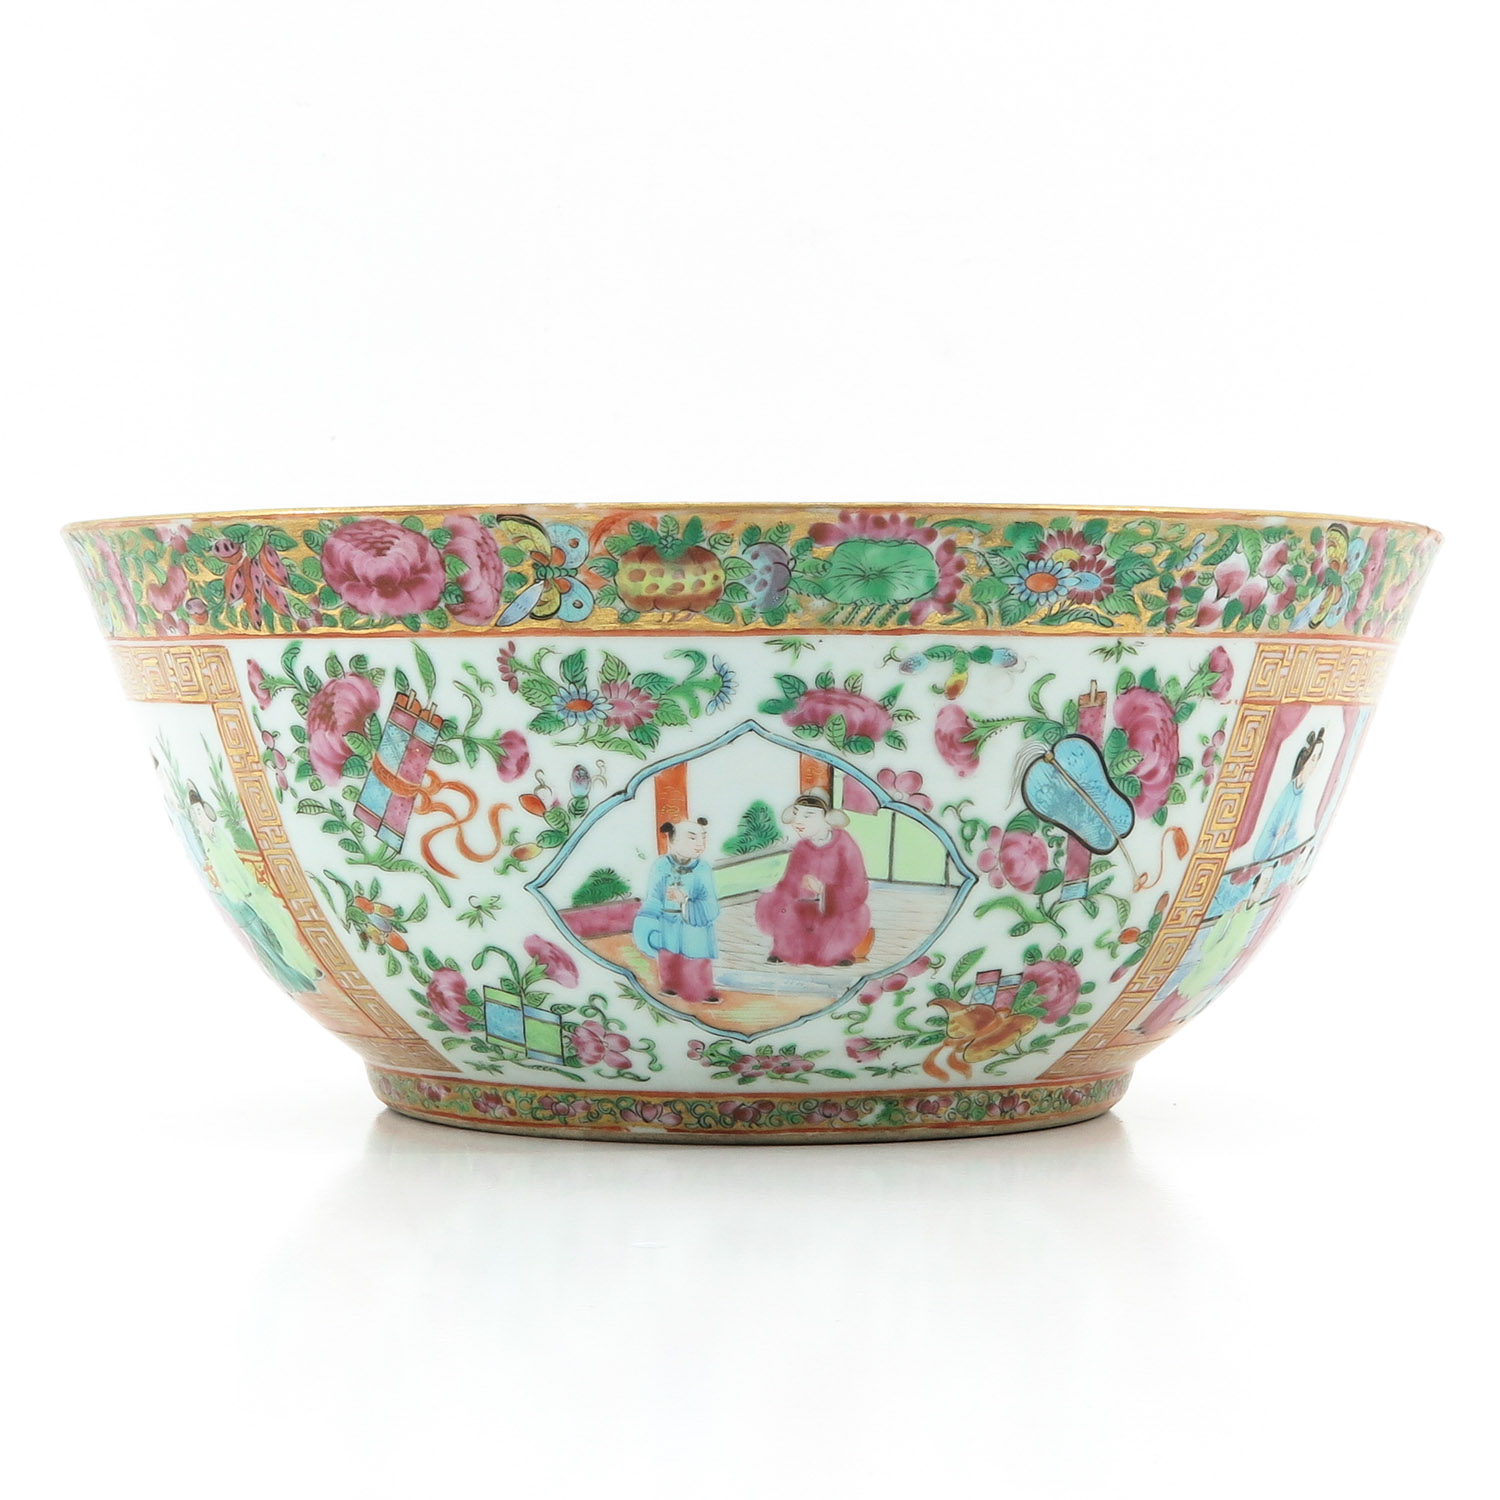 A Cantonese Bowl - Image 4 of 10